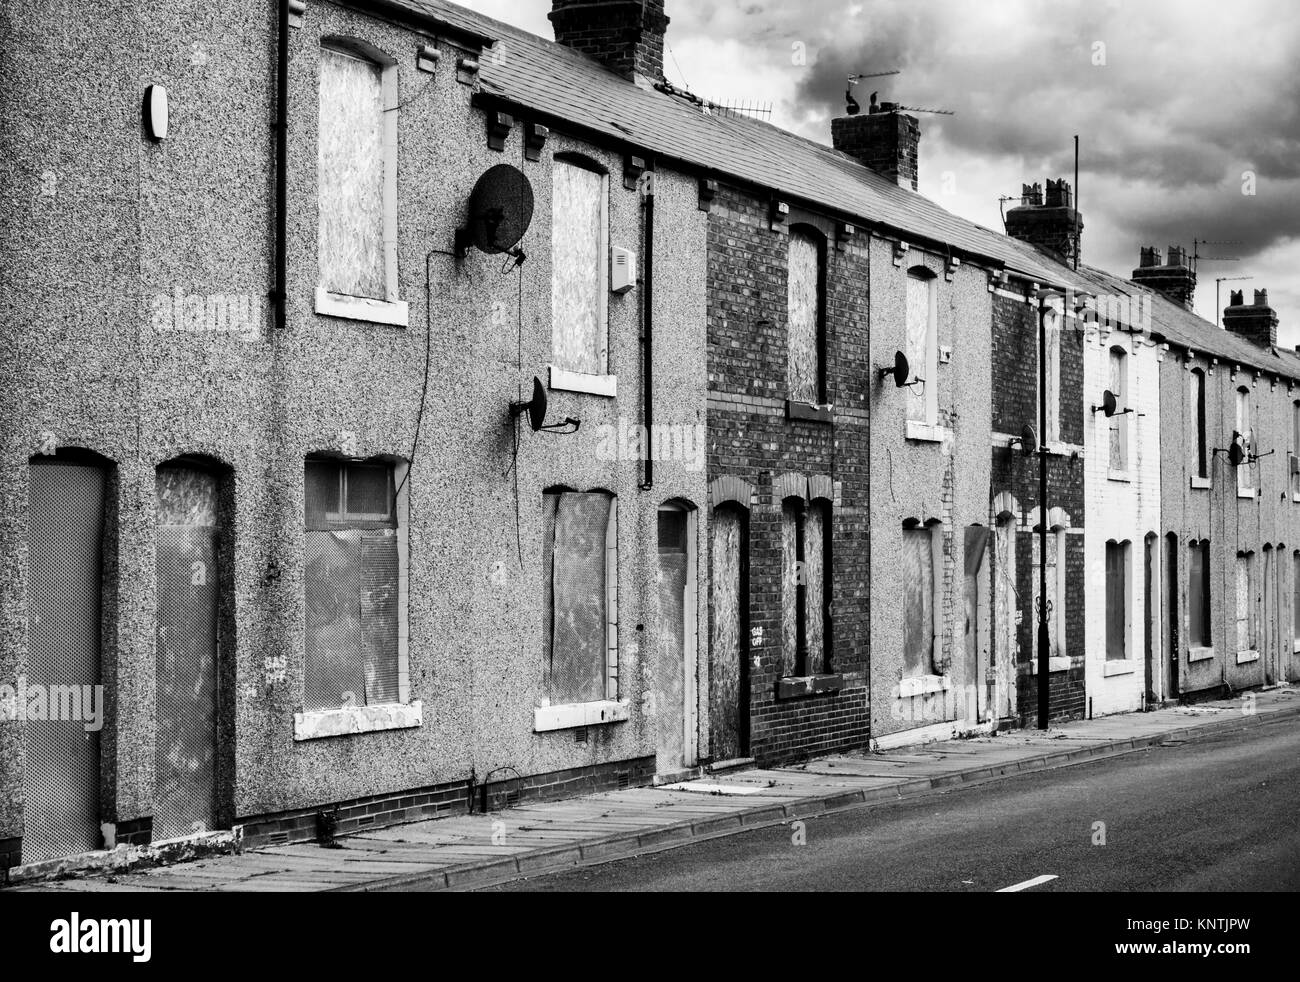 hartlepool derelict terraced houses England Hartlepool england abandoned houses ready for demolition or redevelopment - Stock Image